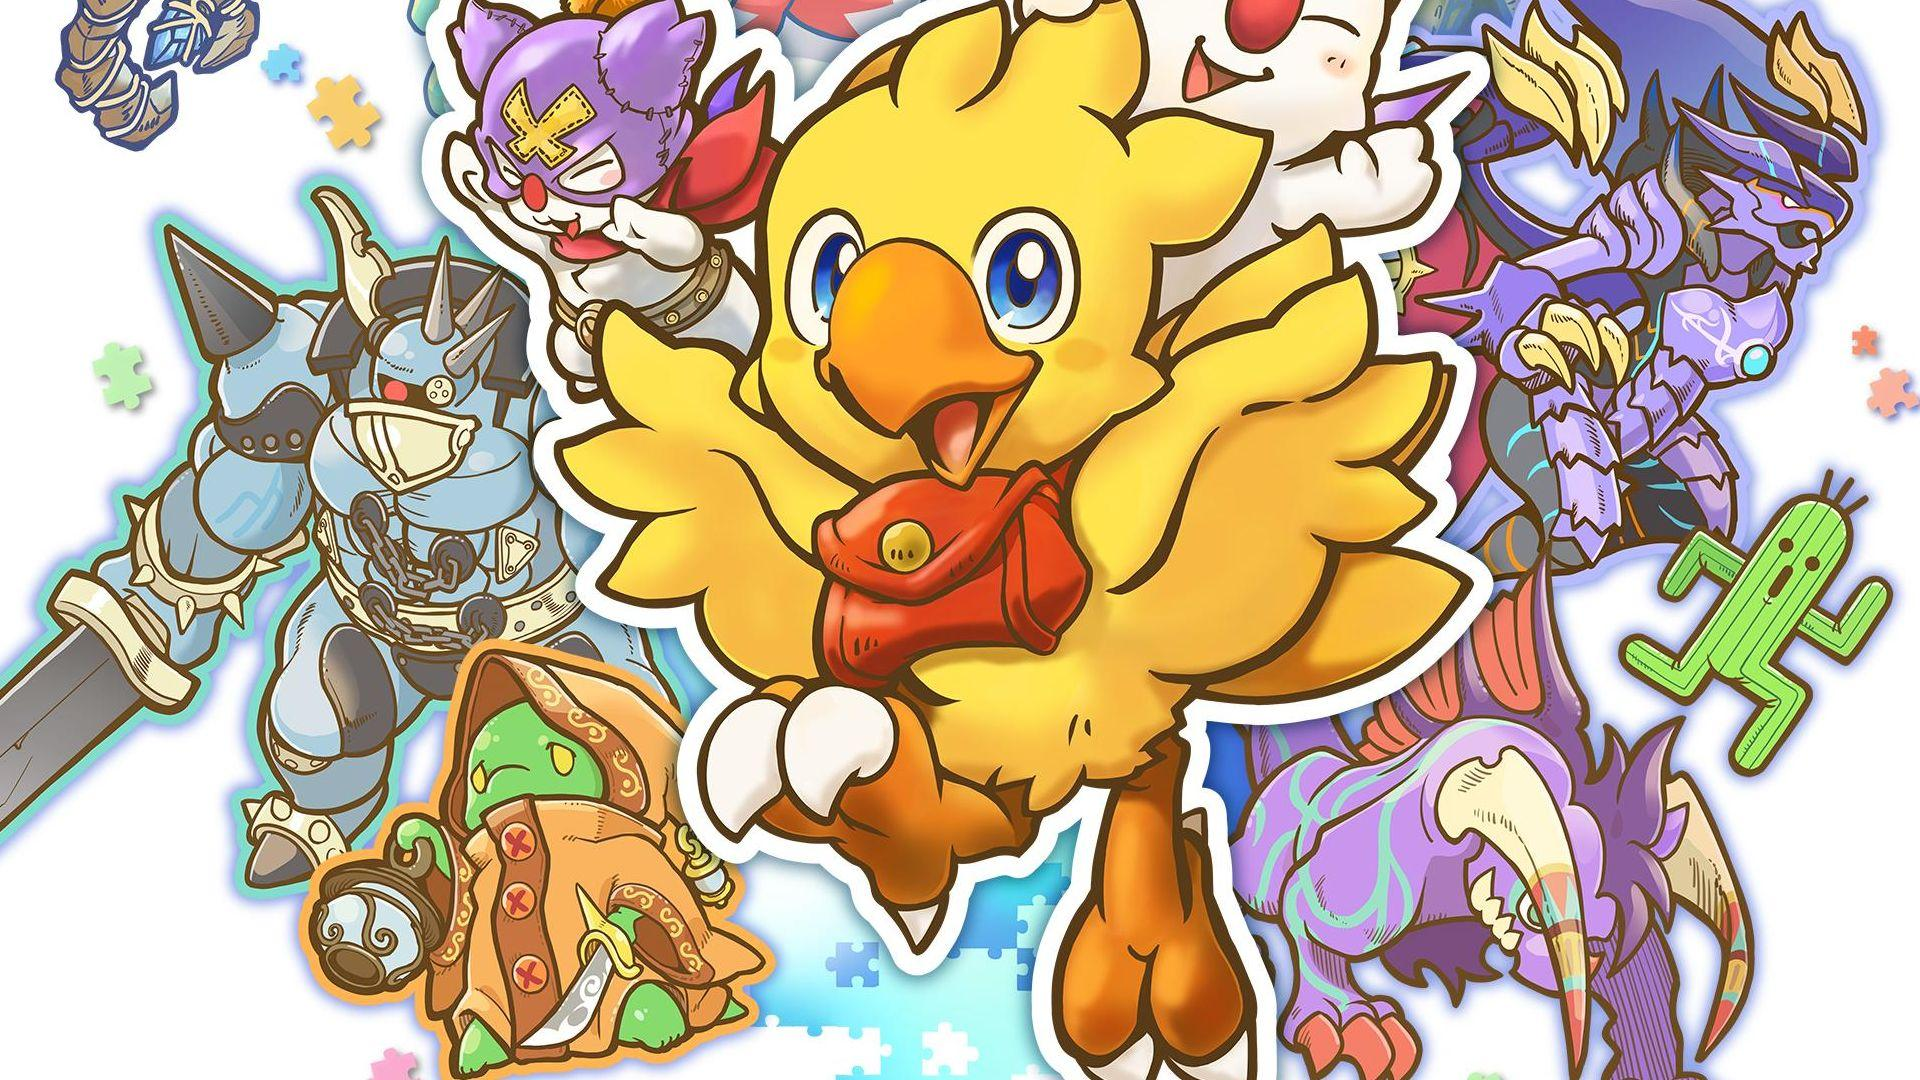 chocobo dungeon every buddy